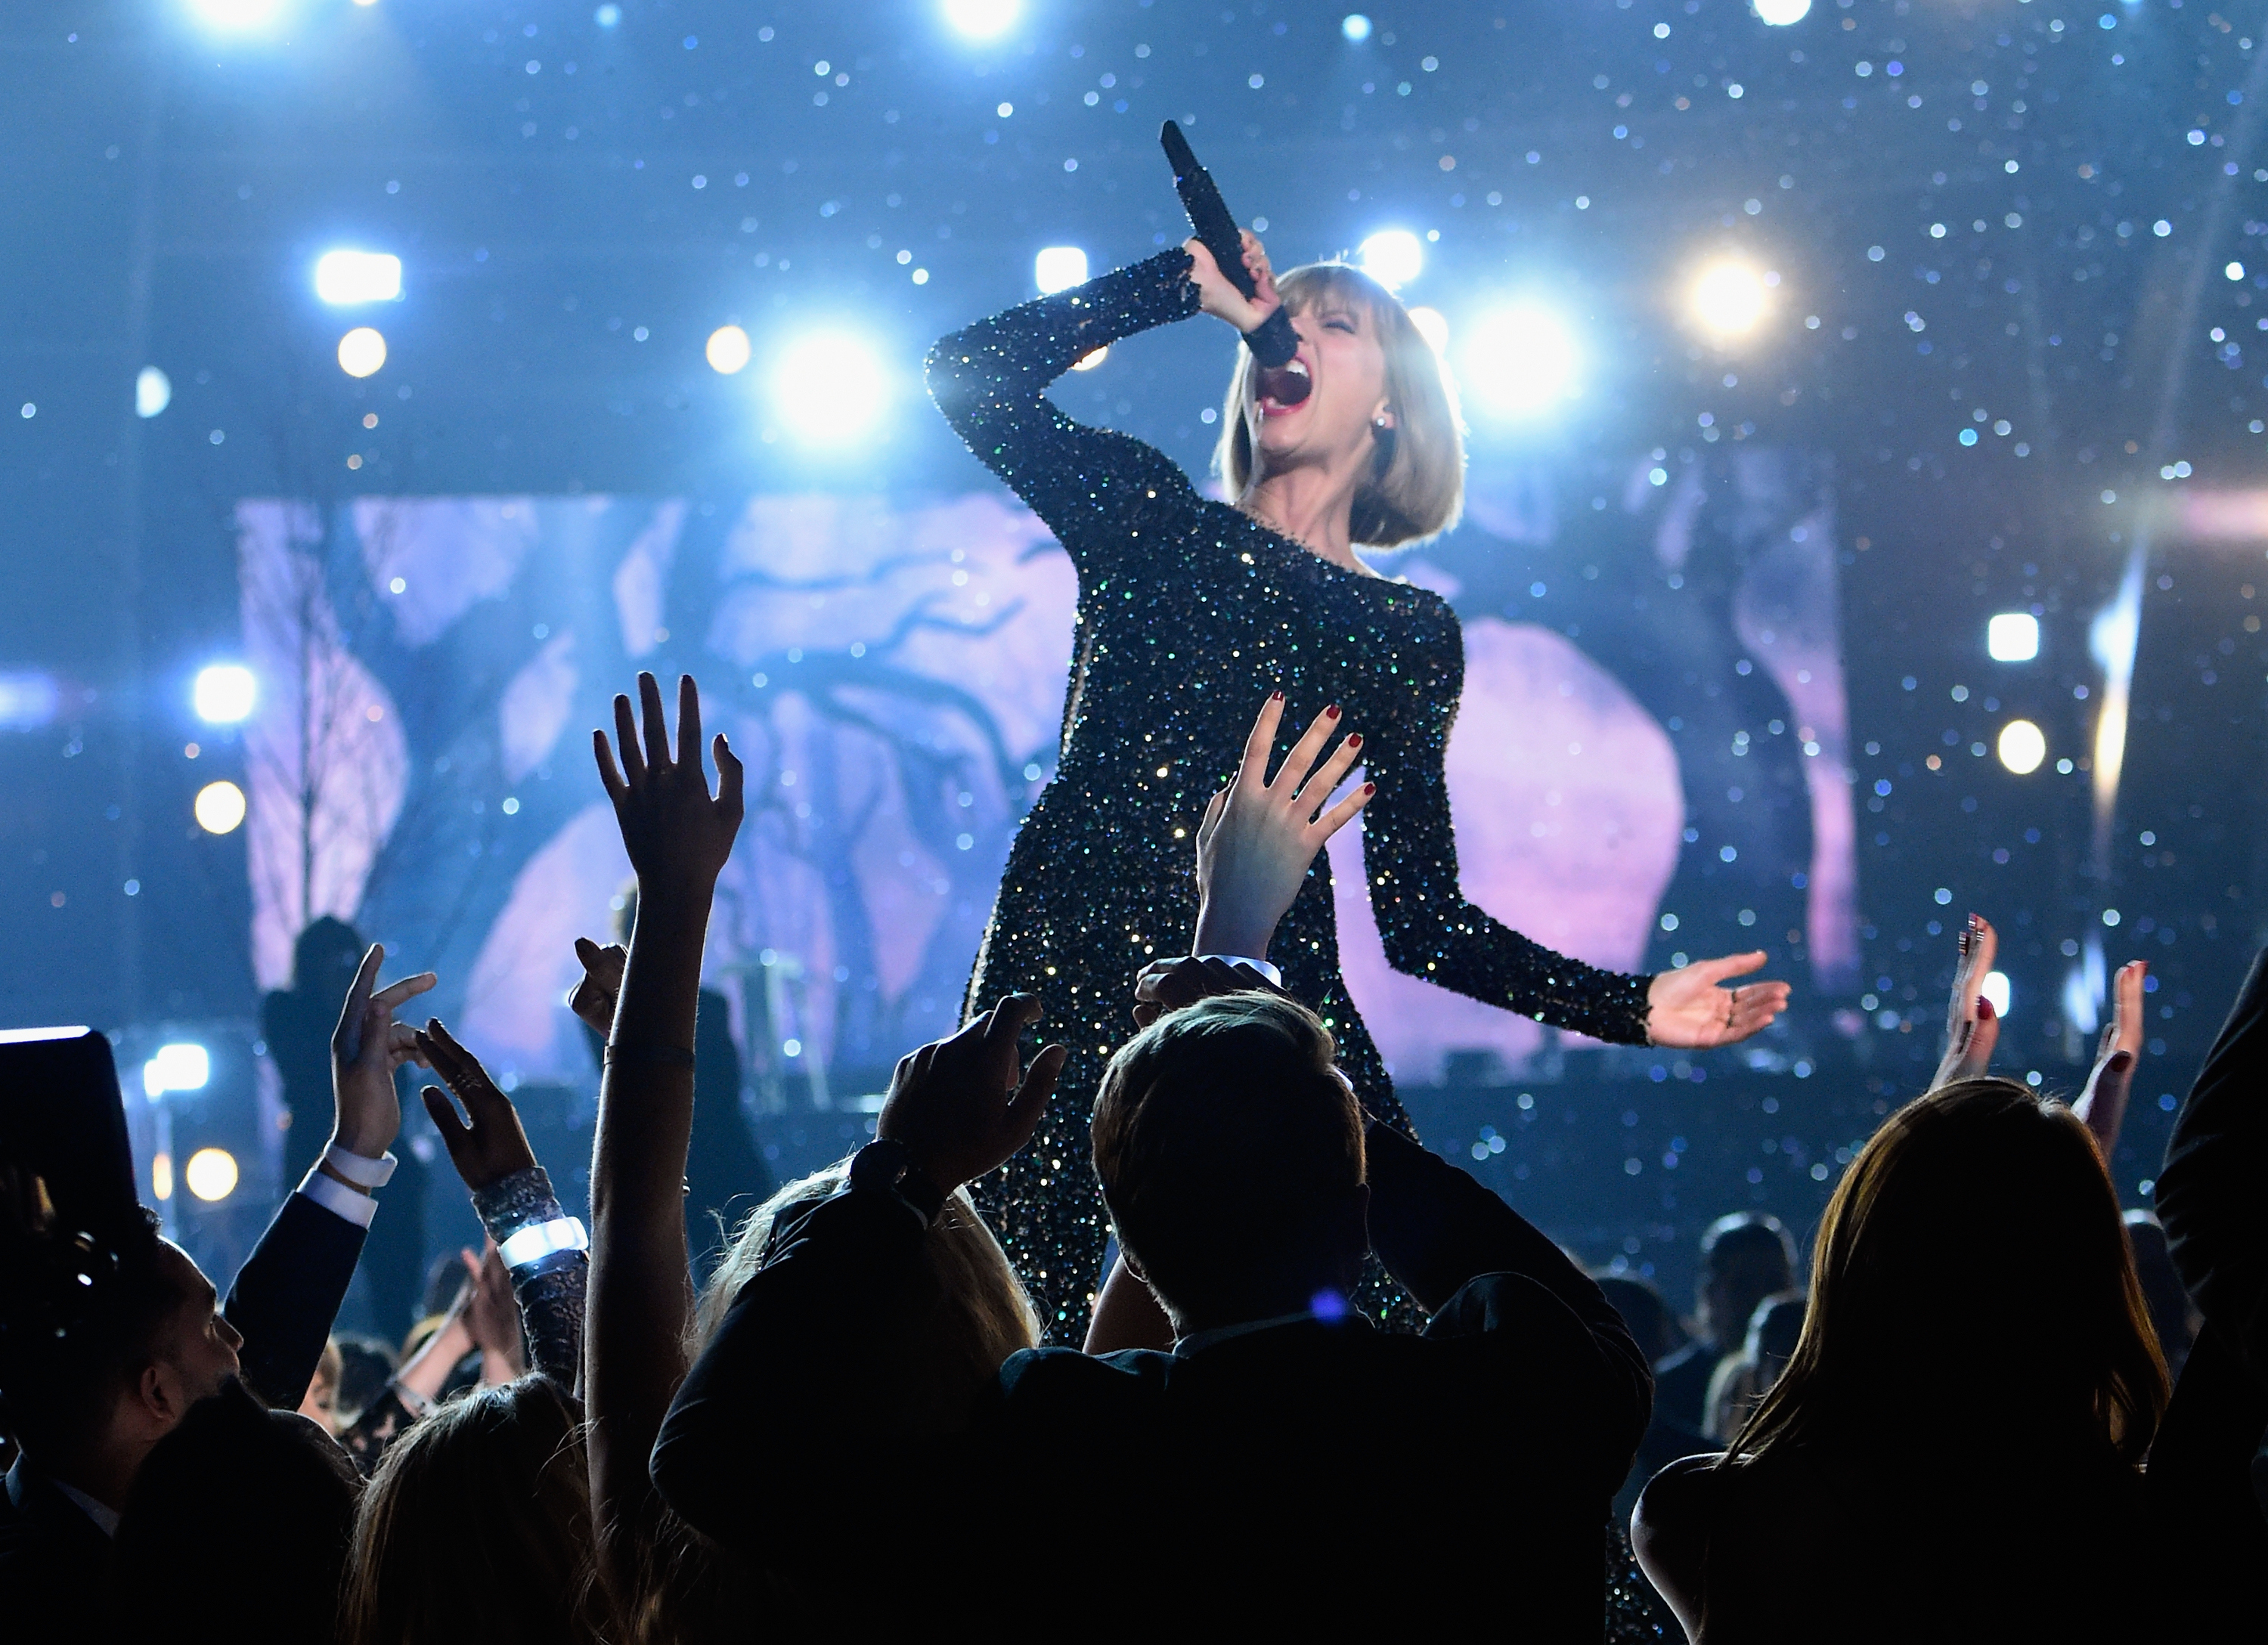 Grammys 2016: 8 Things You Didn't See and Hear on TV